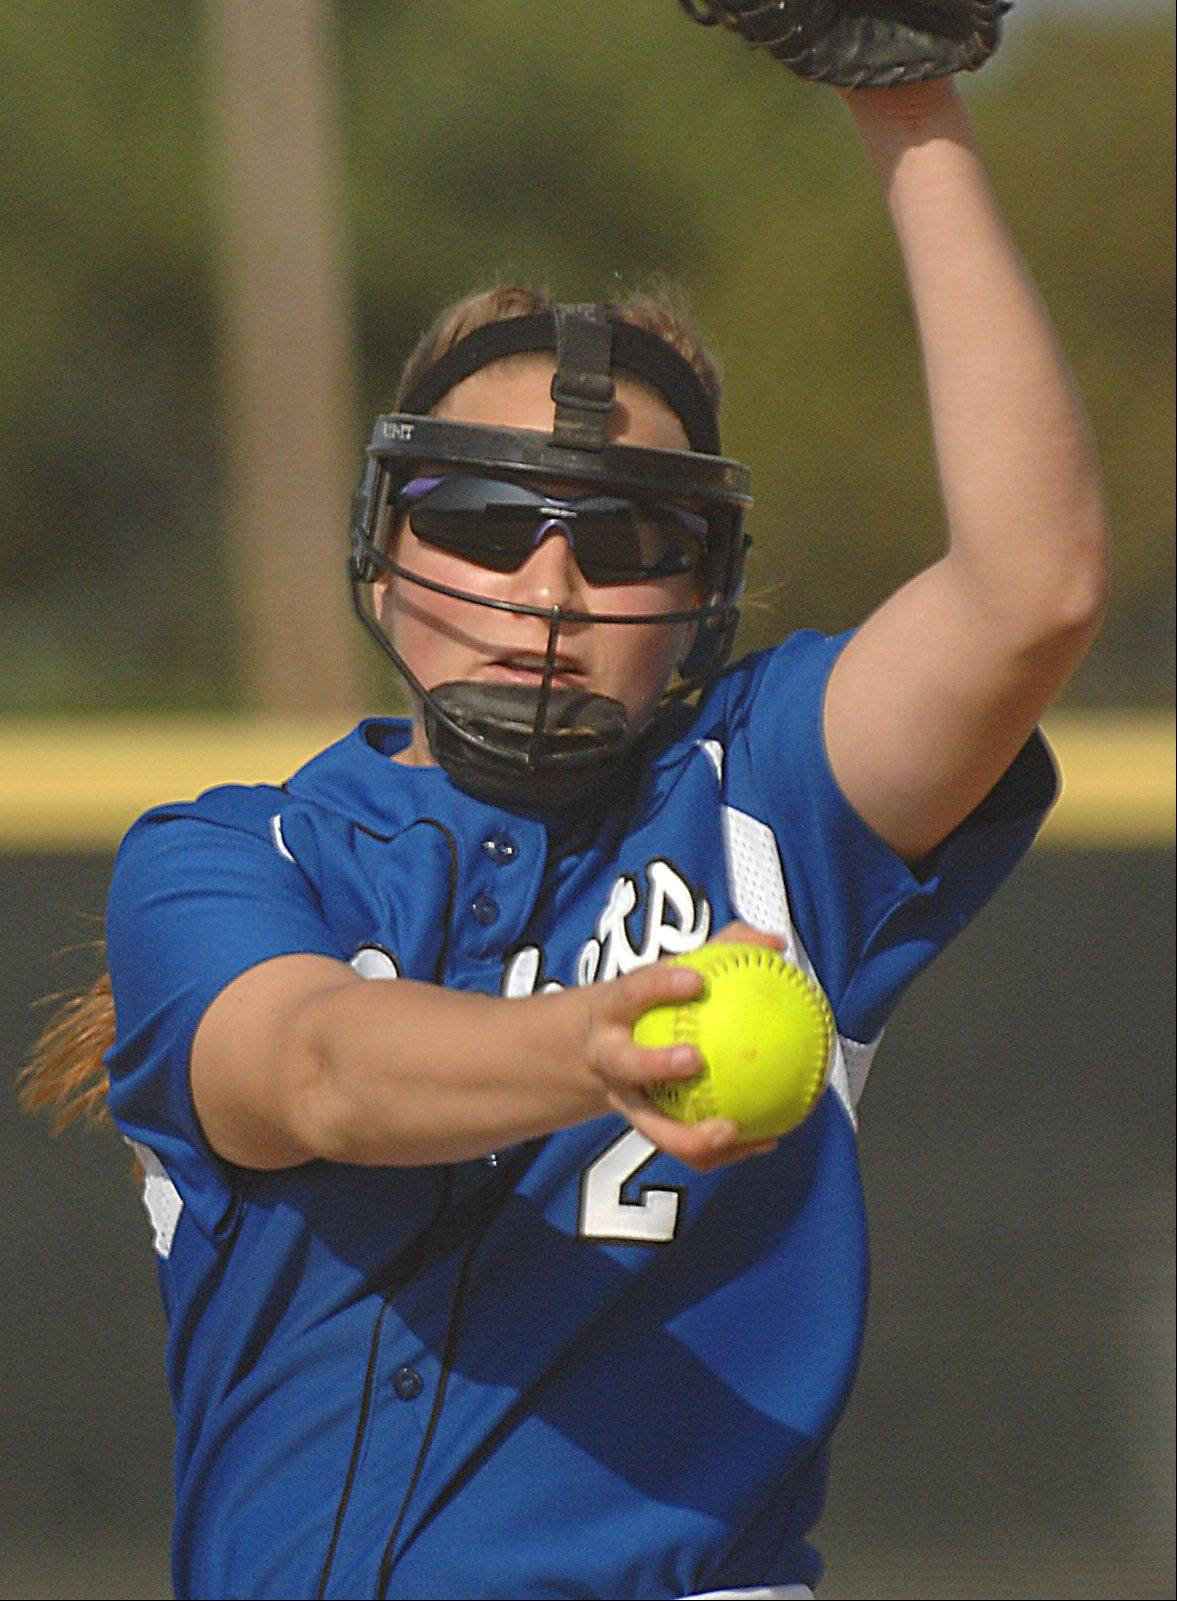 Burlington Central sophomore pitcher Angie Morrow has accepted a scholarship offer from the University of Wisconsin.